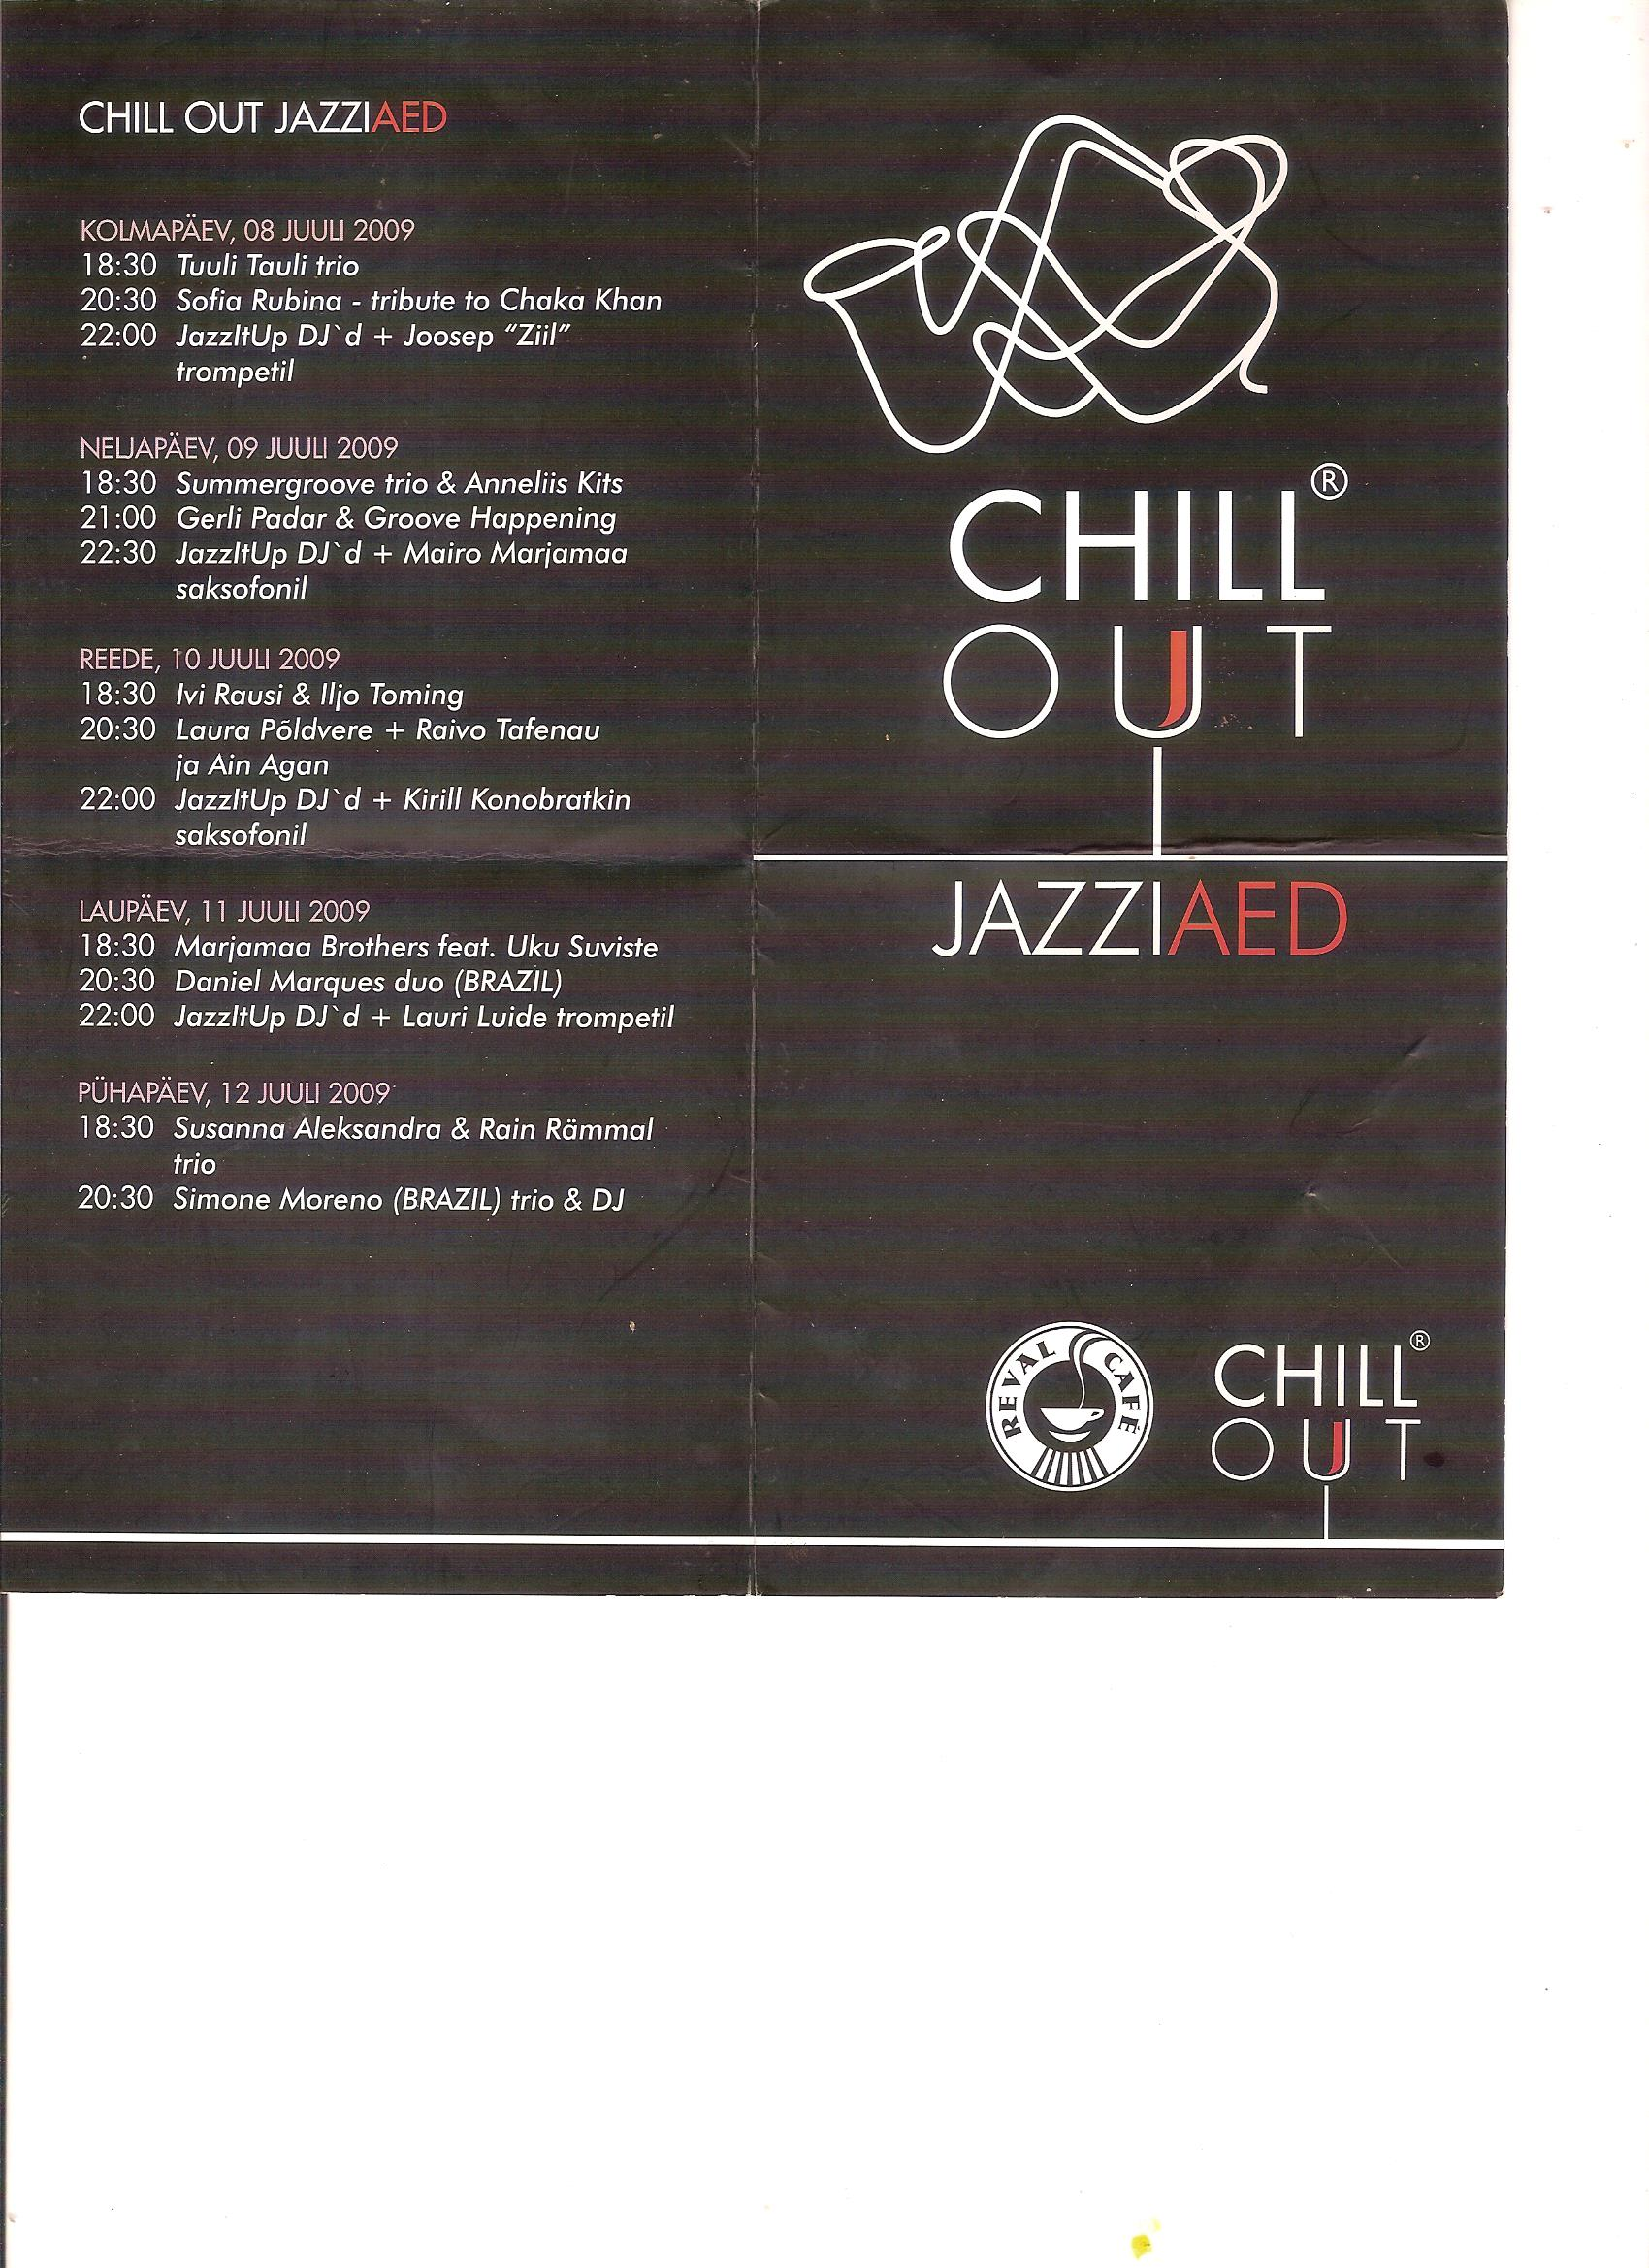 CHILL OUT JAZZIAD ESTÔNIA 001.jpg